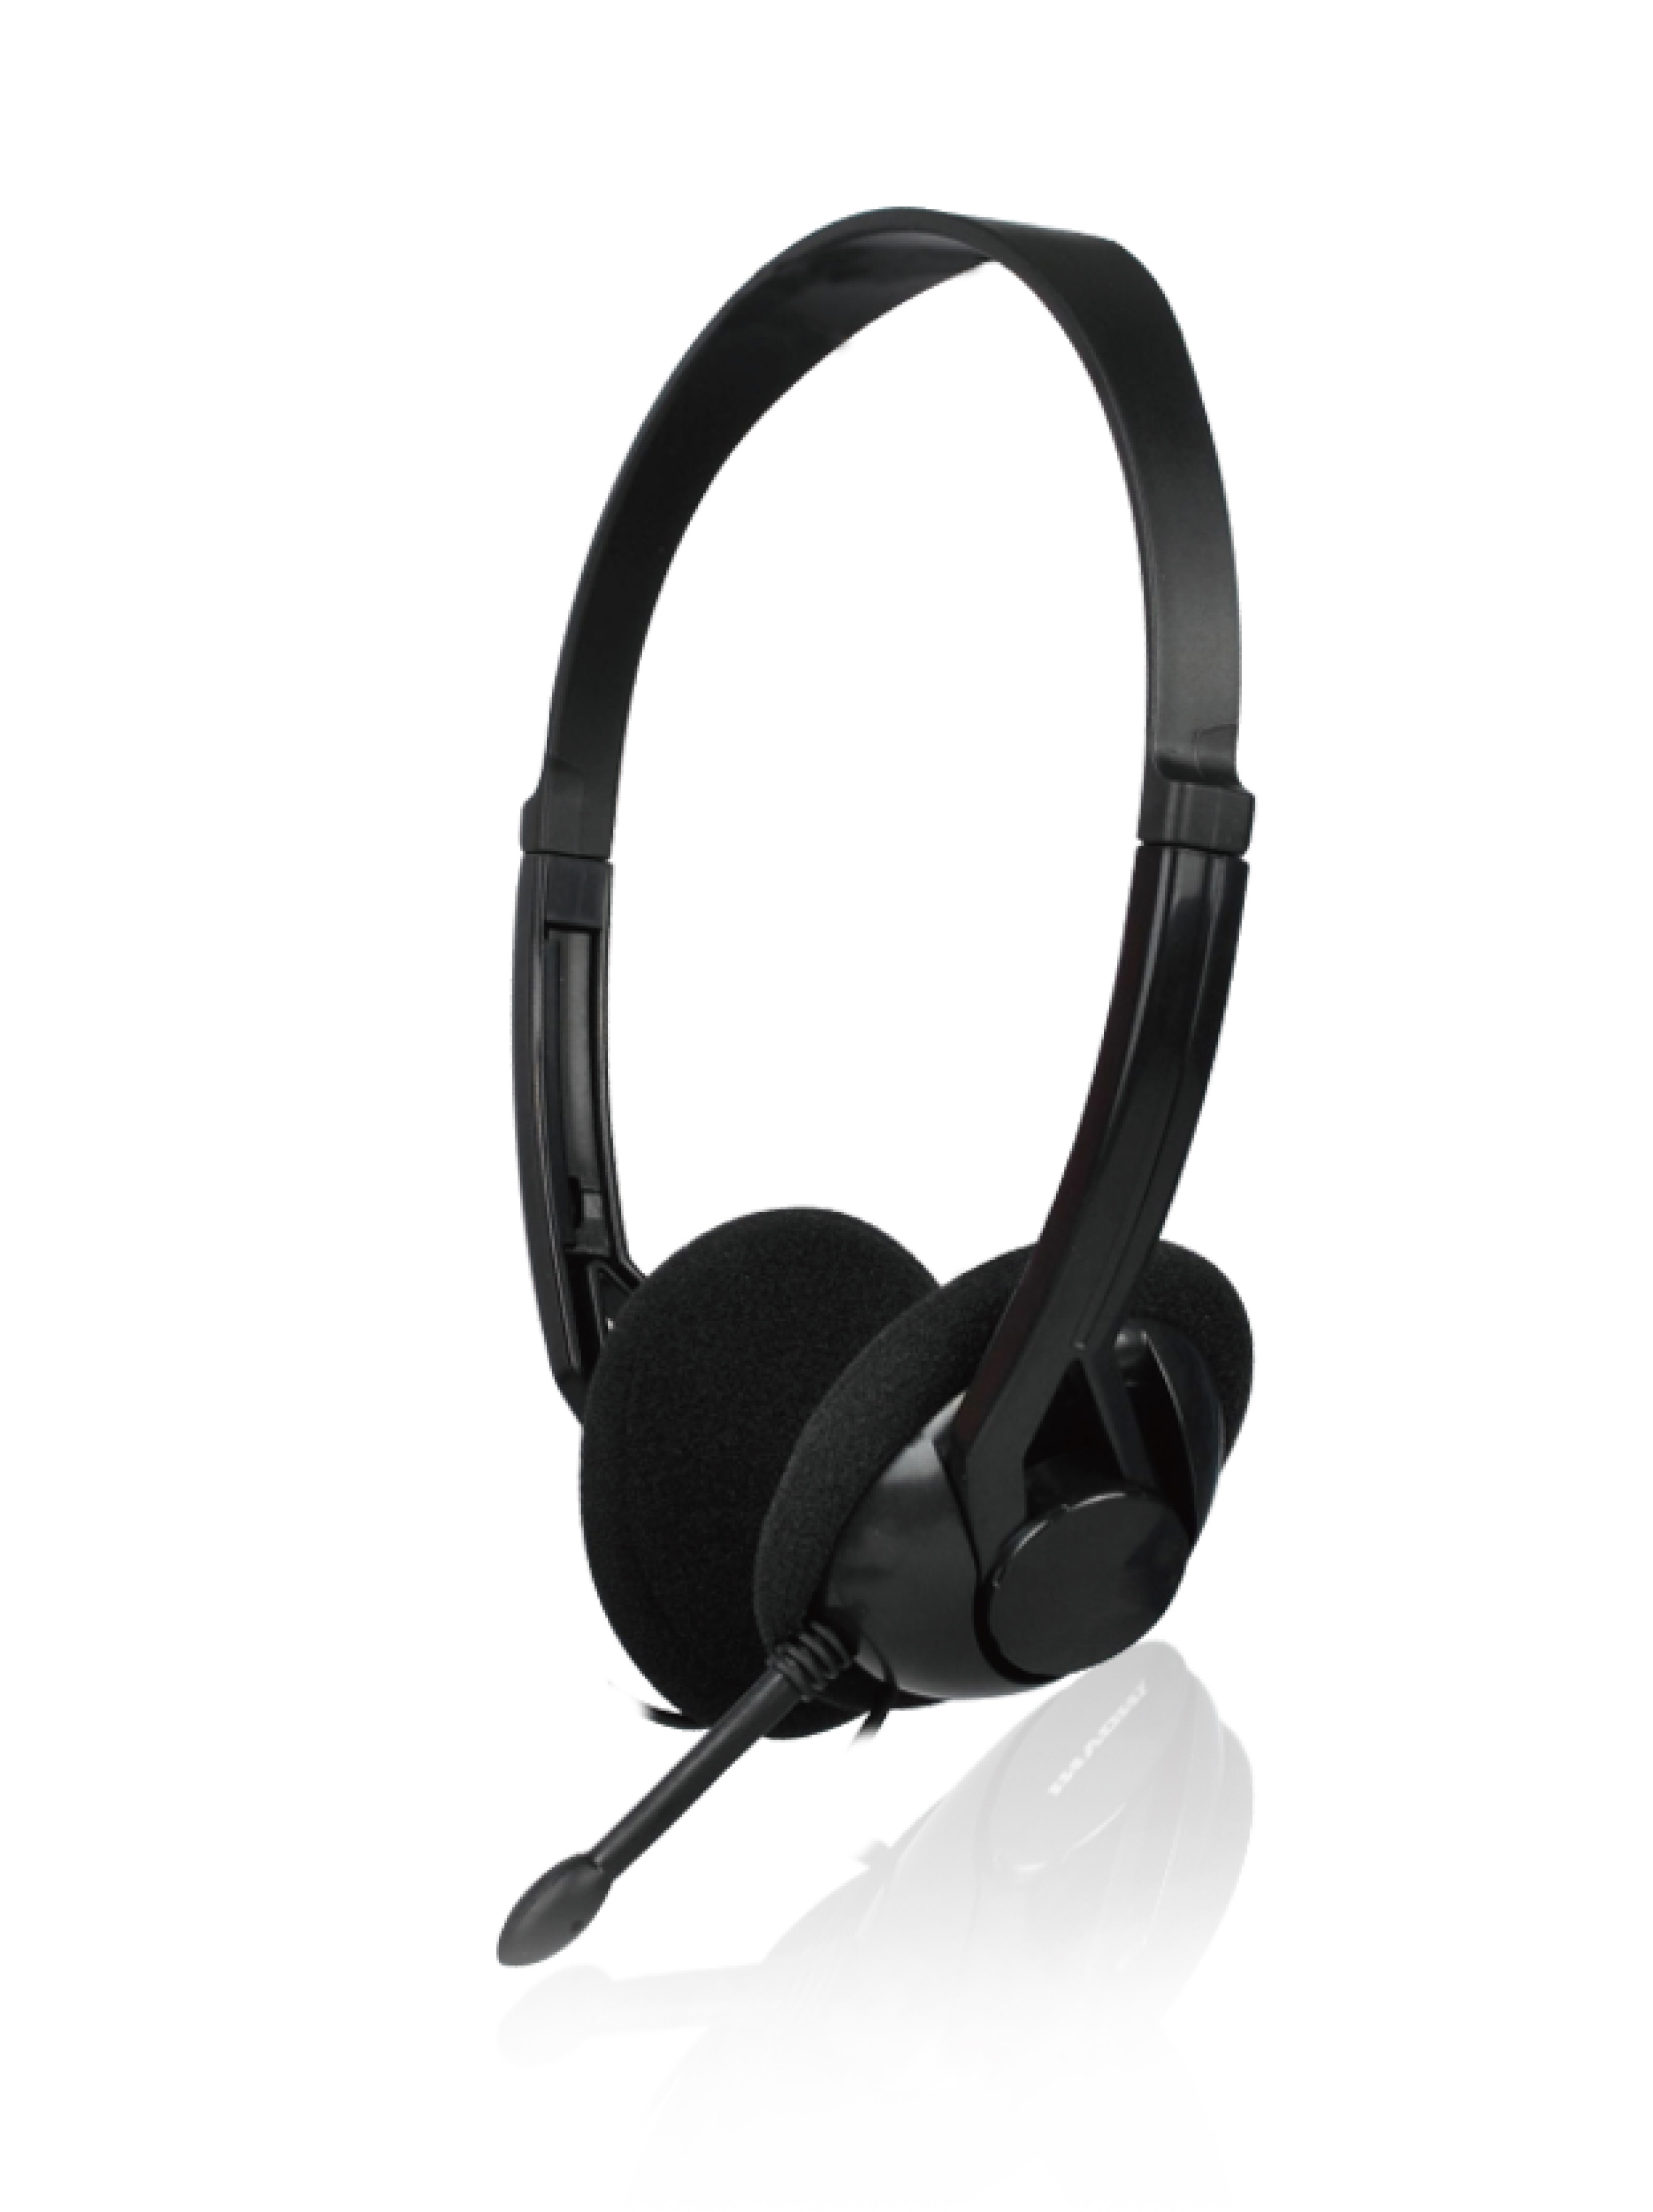 PC Headset with Mic